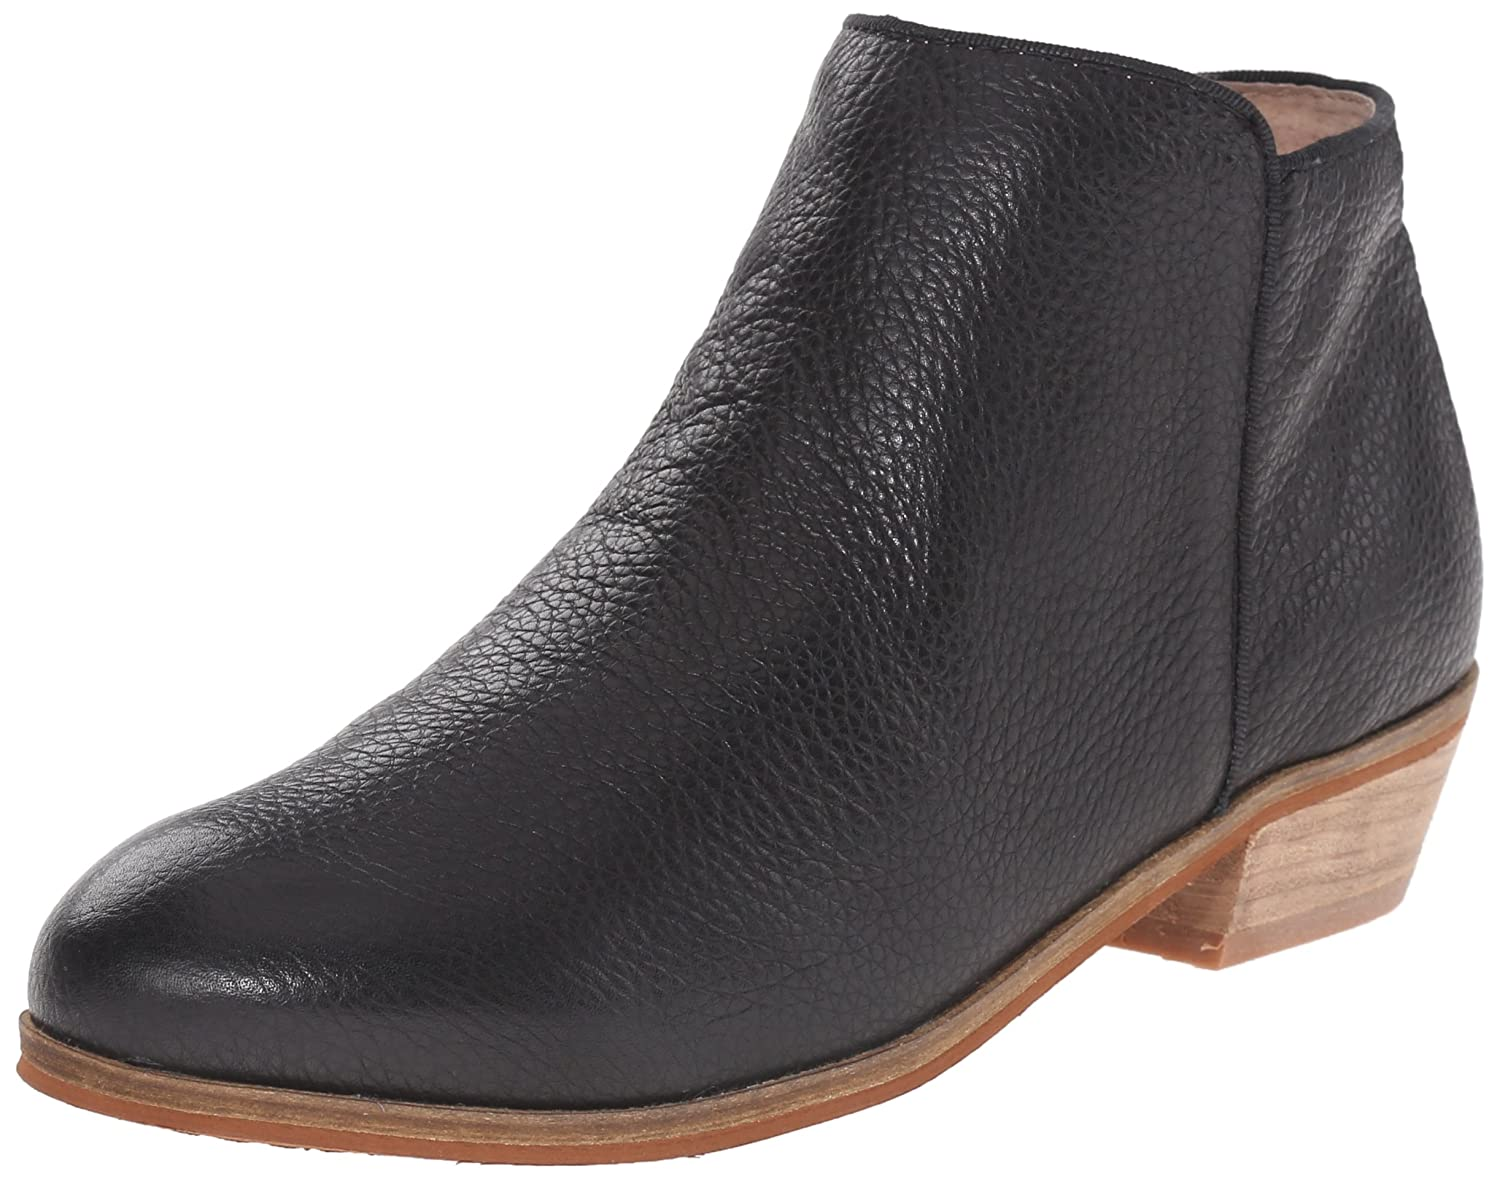 SoftWalk Women's Rocklin Chelsea Boot B00HQNH30Y 8 B(M) US|Black Veg Tumbled Leather